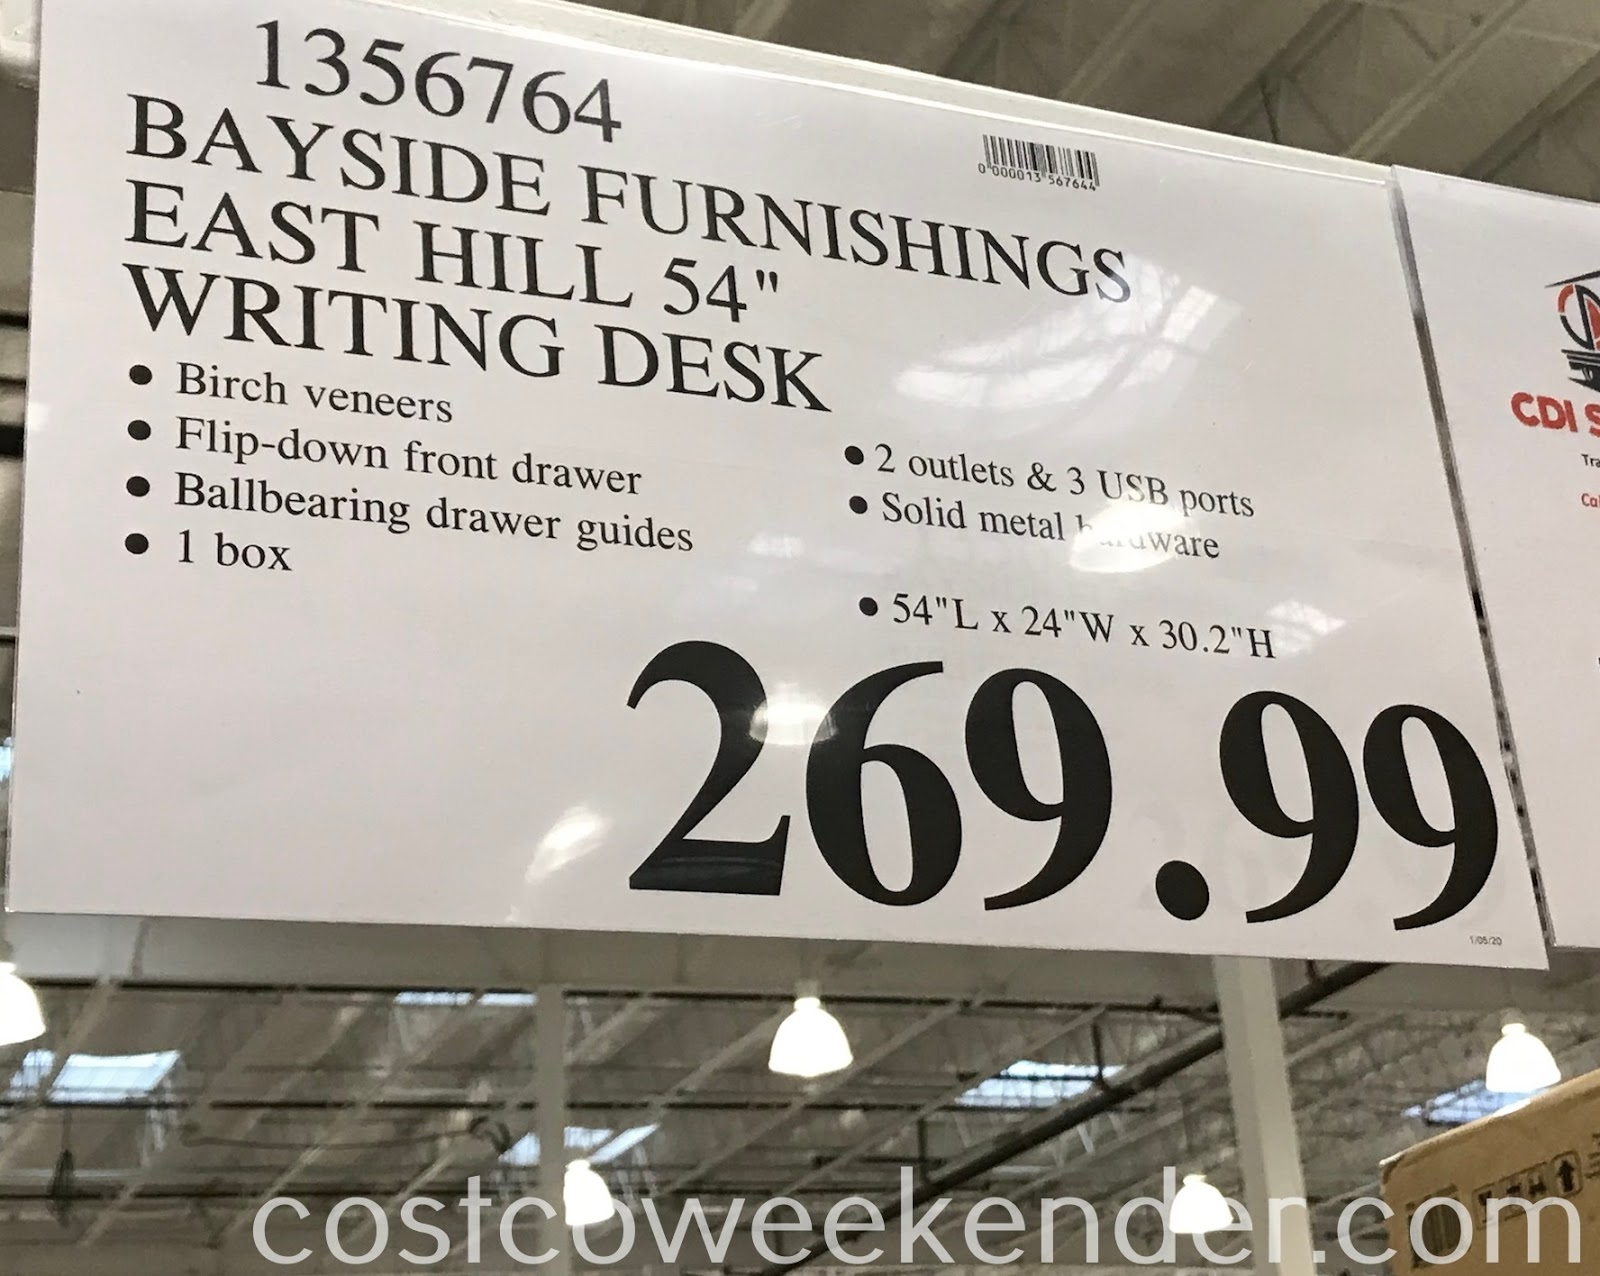 Deal for the Bayside Furnishings East Hill Writing Desk at Costco